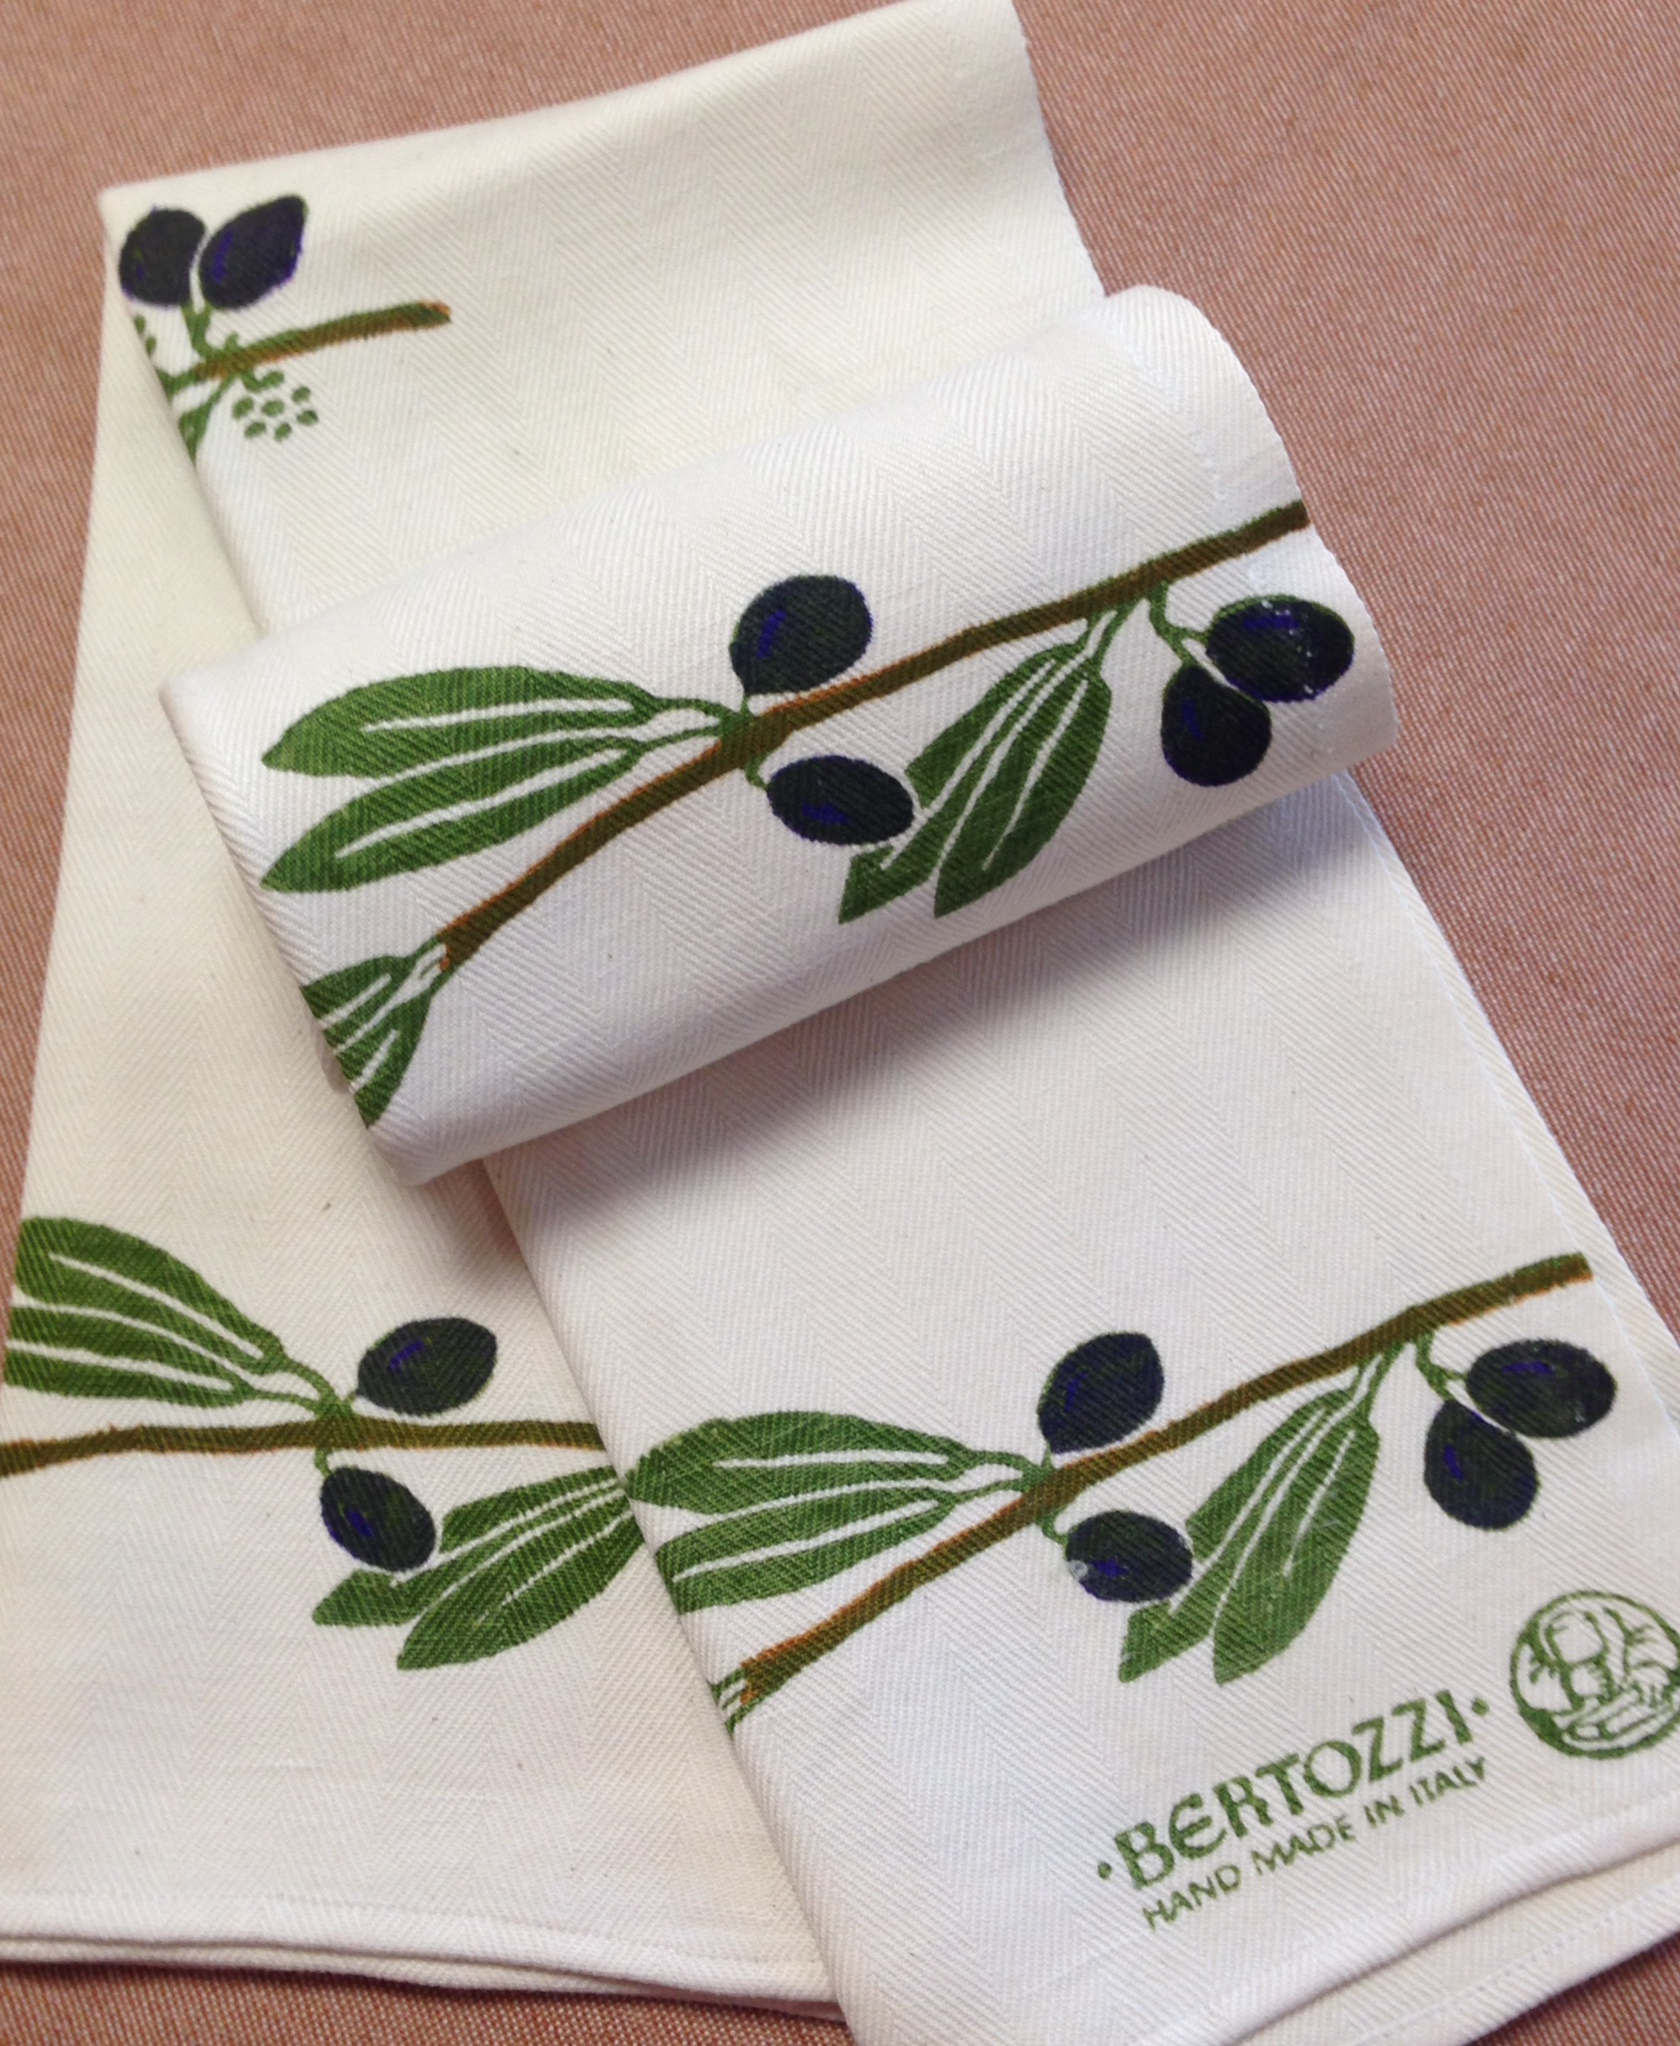 Superbe Italian Bed Bath And Table Linens